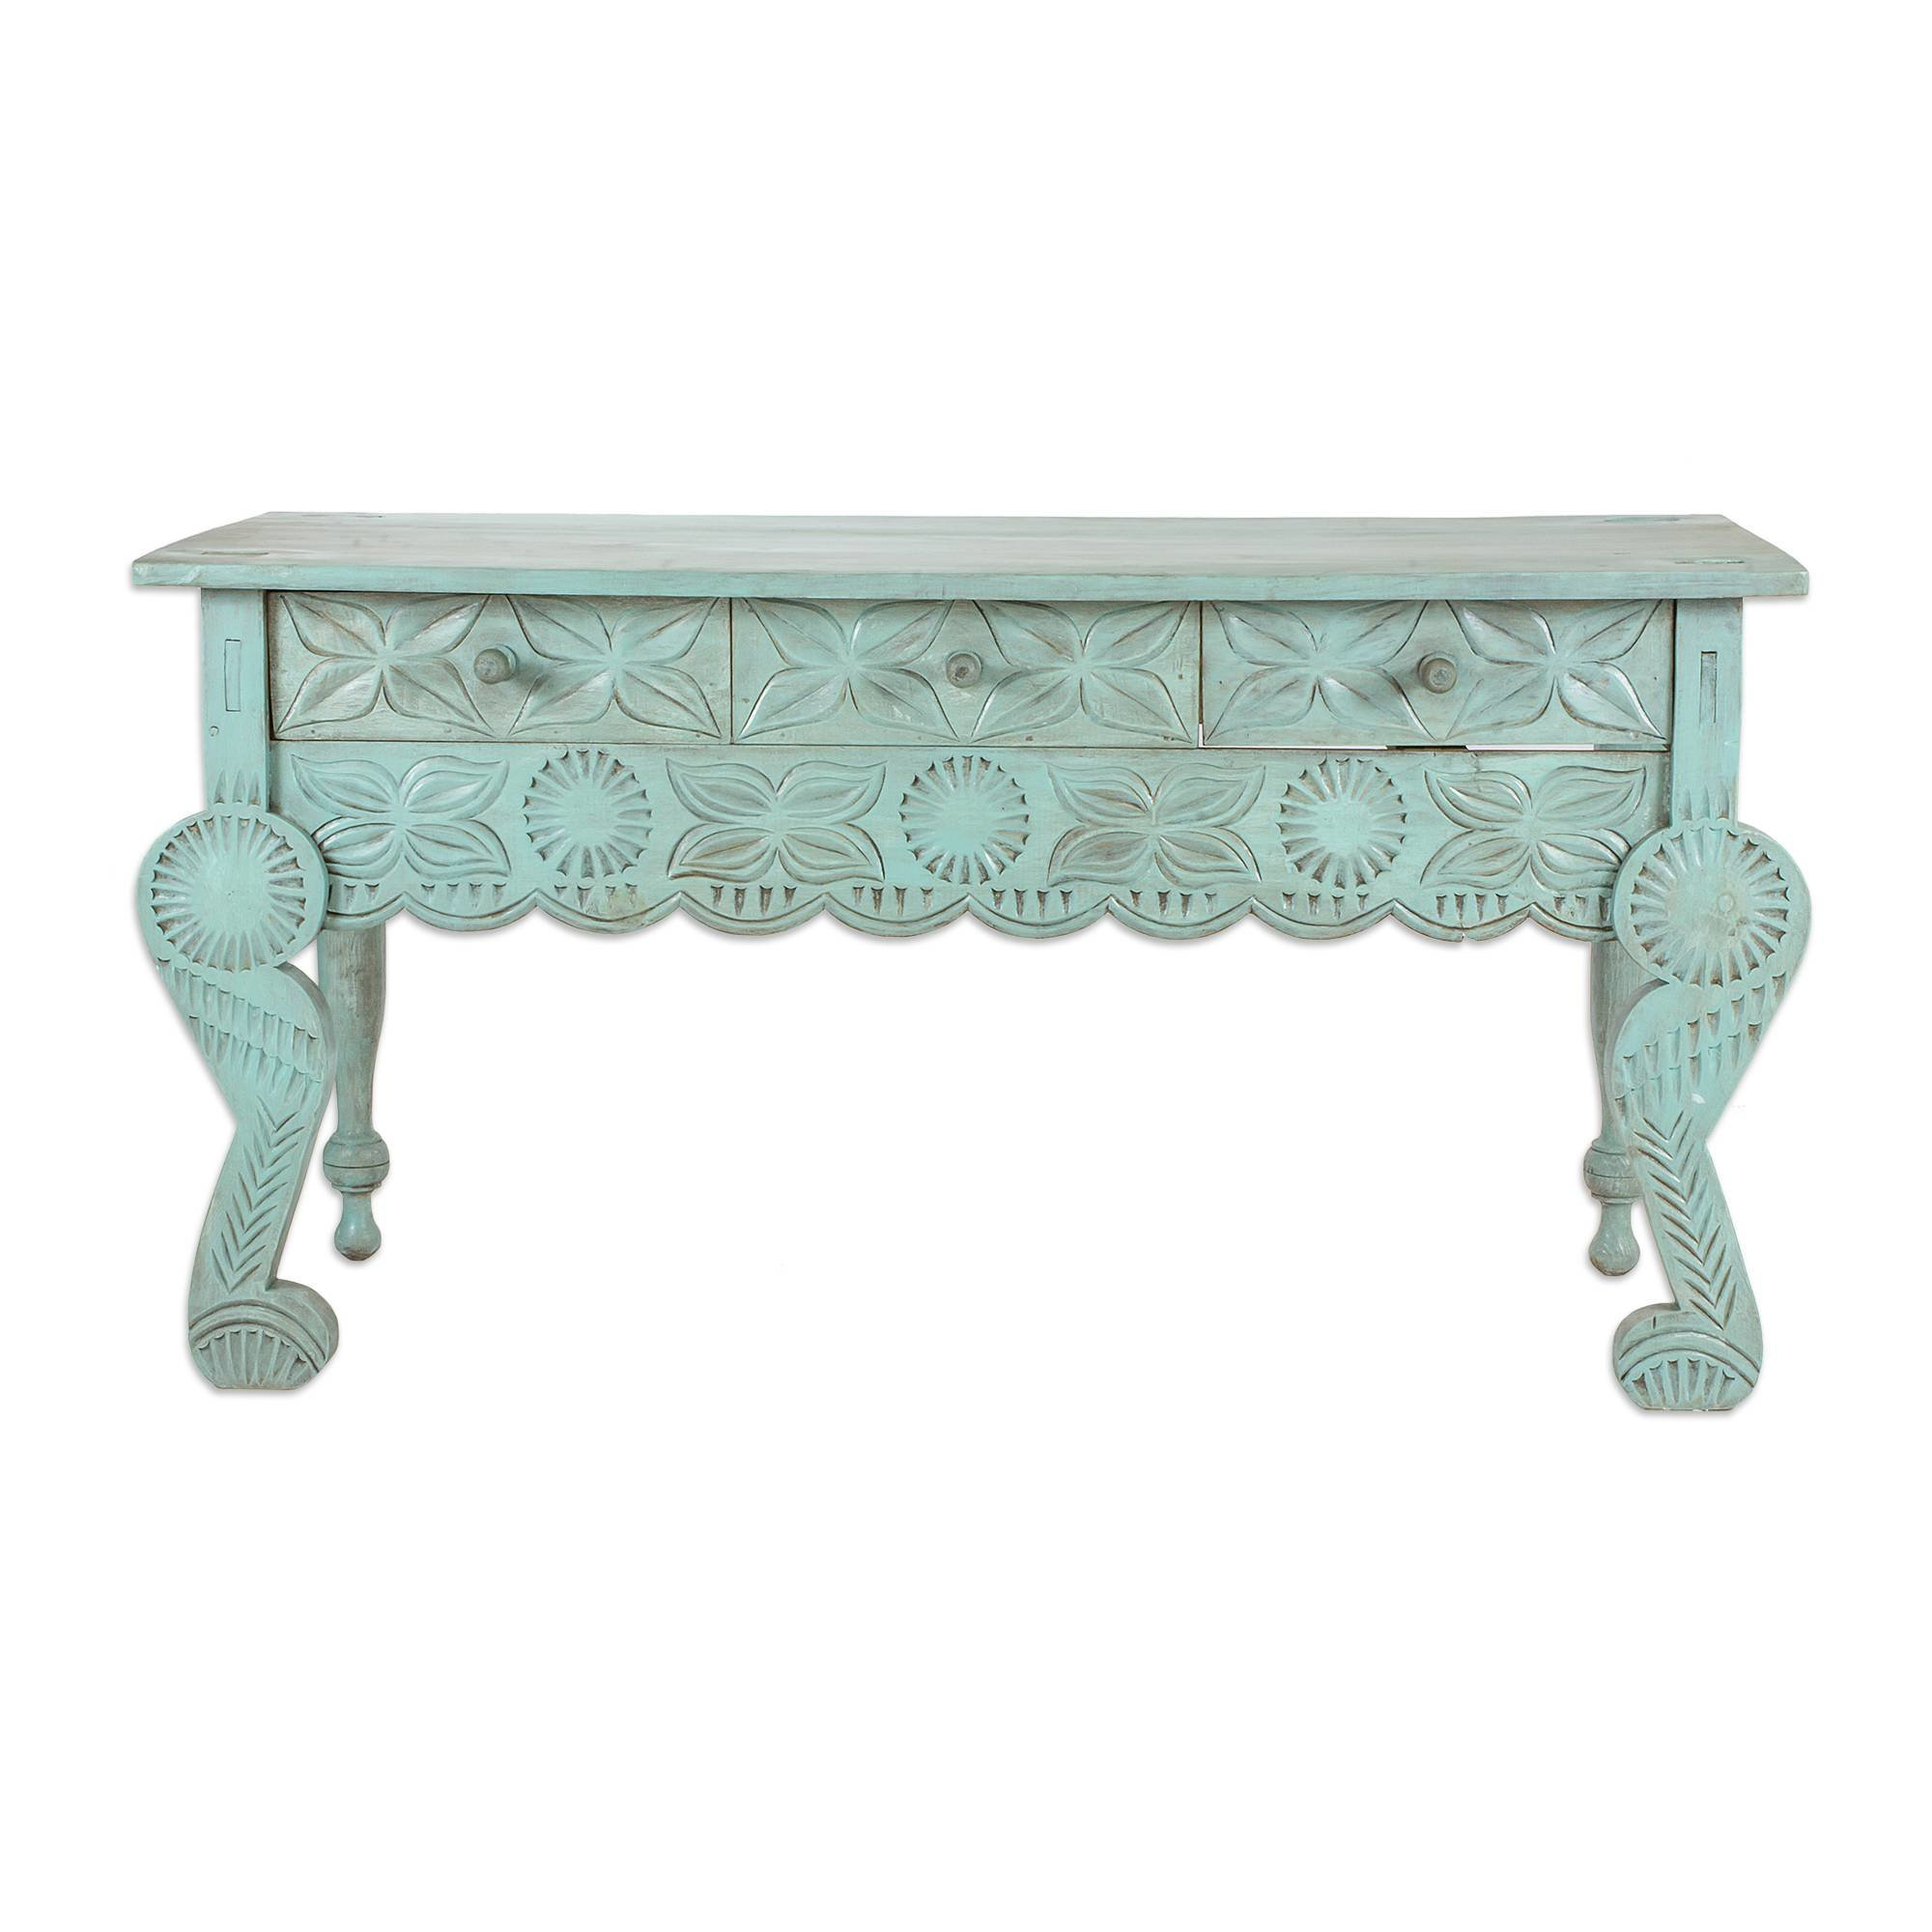 Bloomsbury Market Liddel Elegant Patina Wood Console Table | Wayfair In Mix Patina Metal Frame Console Tables (View 17 of 30)